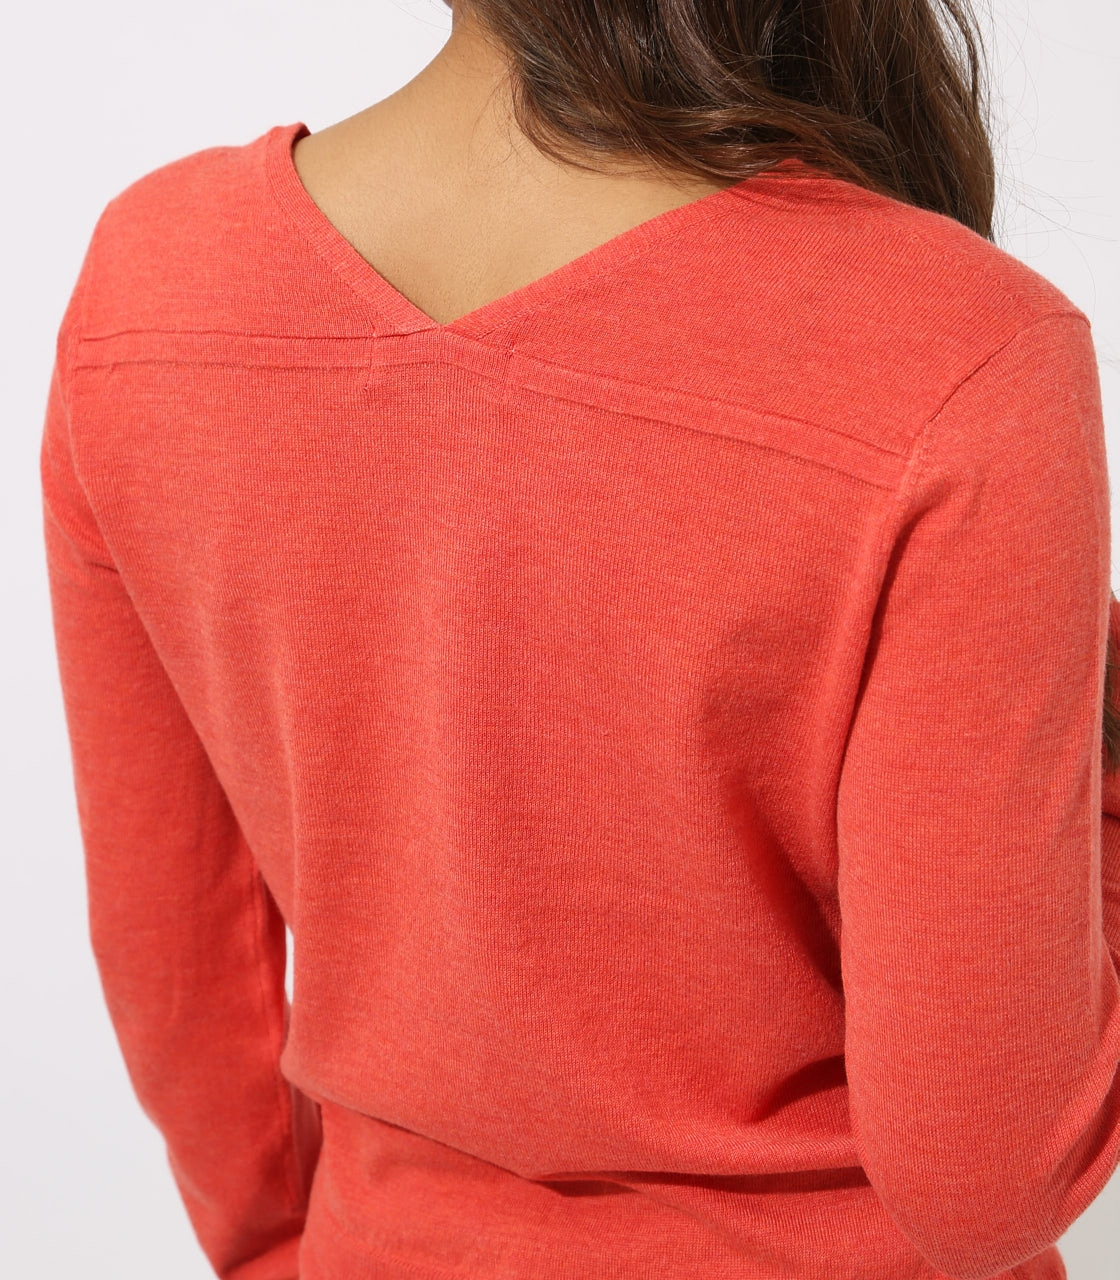 BASIC VNECK KNIT TOPS 詳細画像 L/RED 9